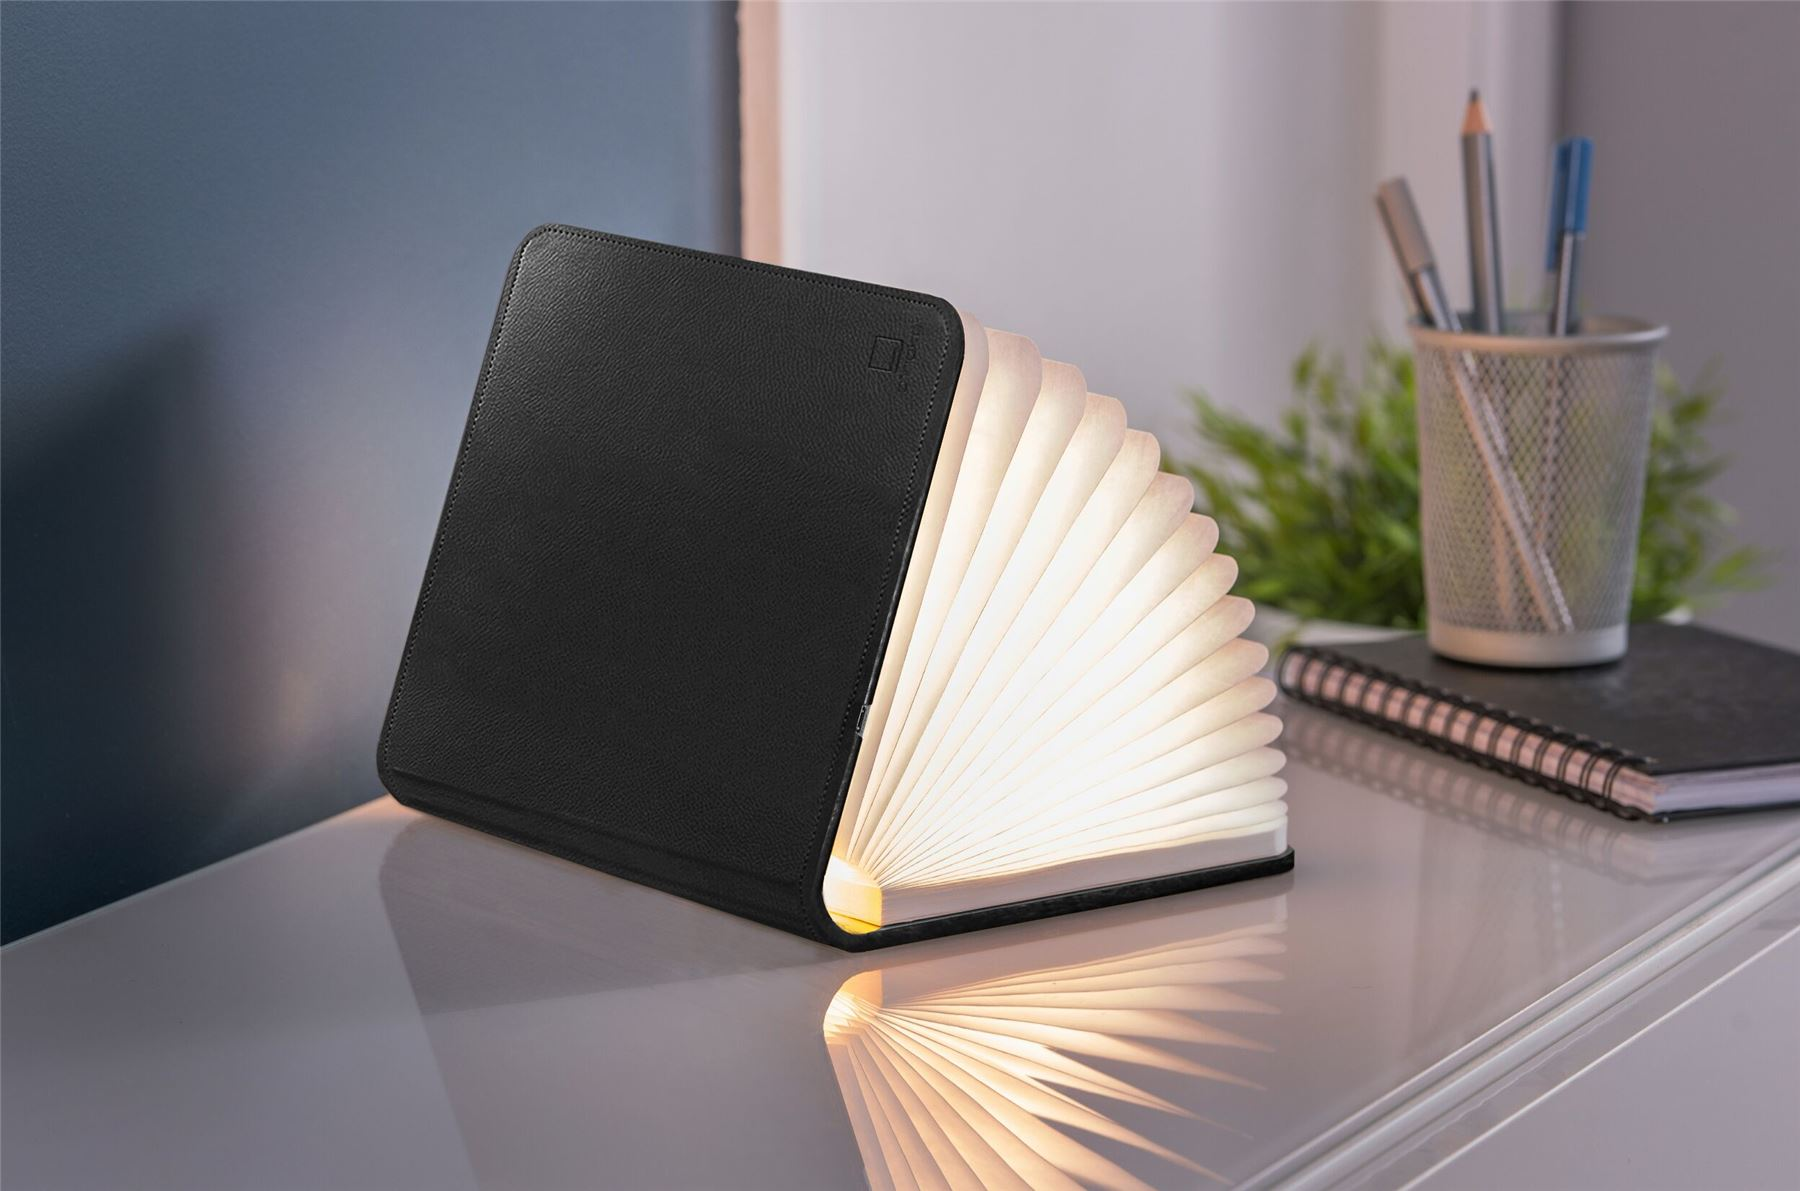 LED-Wood-Leather-Effect-Book-Desk-Lamp-Gingko-USB-Rechargeable-360-Light miniatuur 8